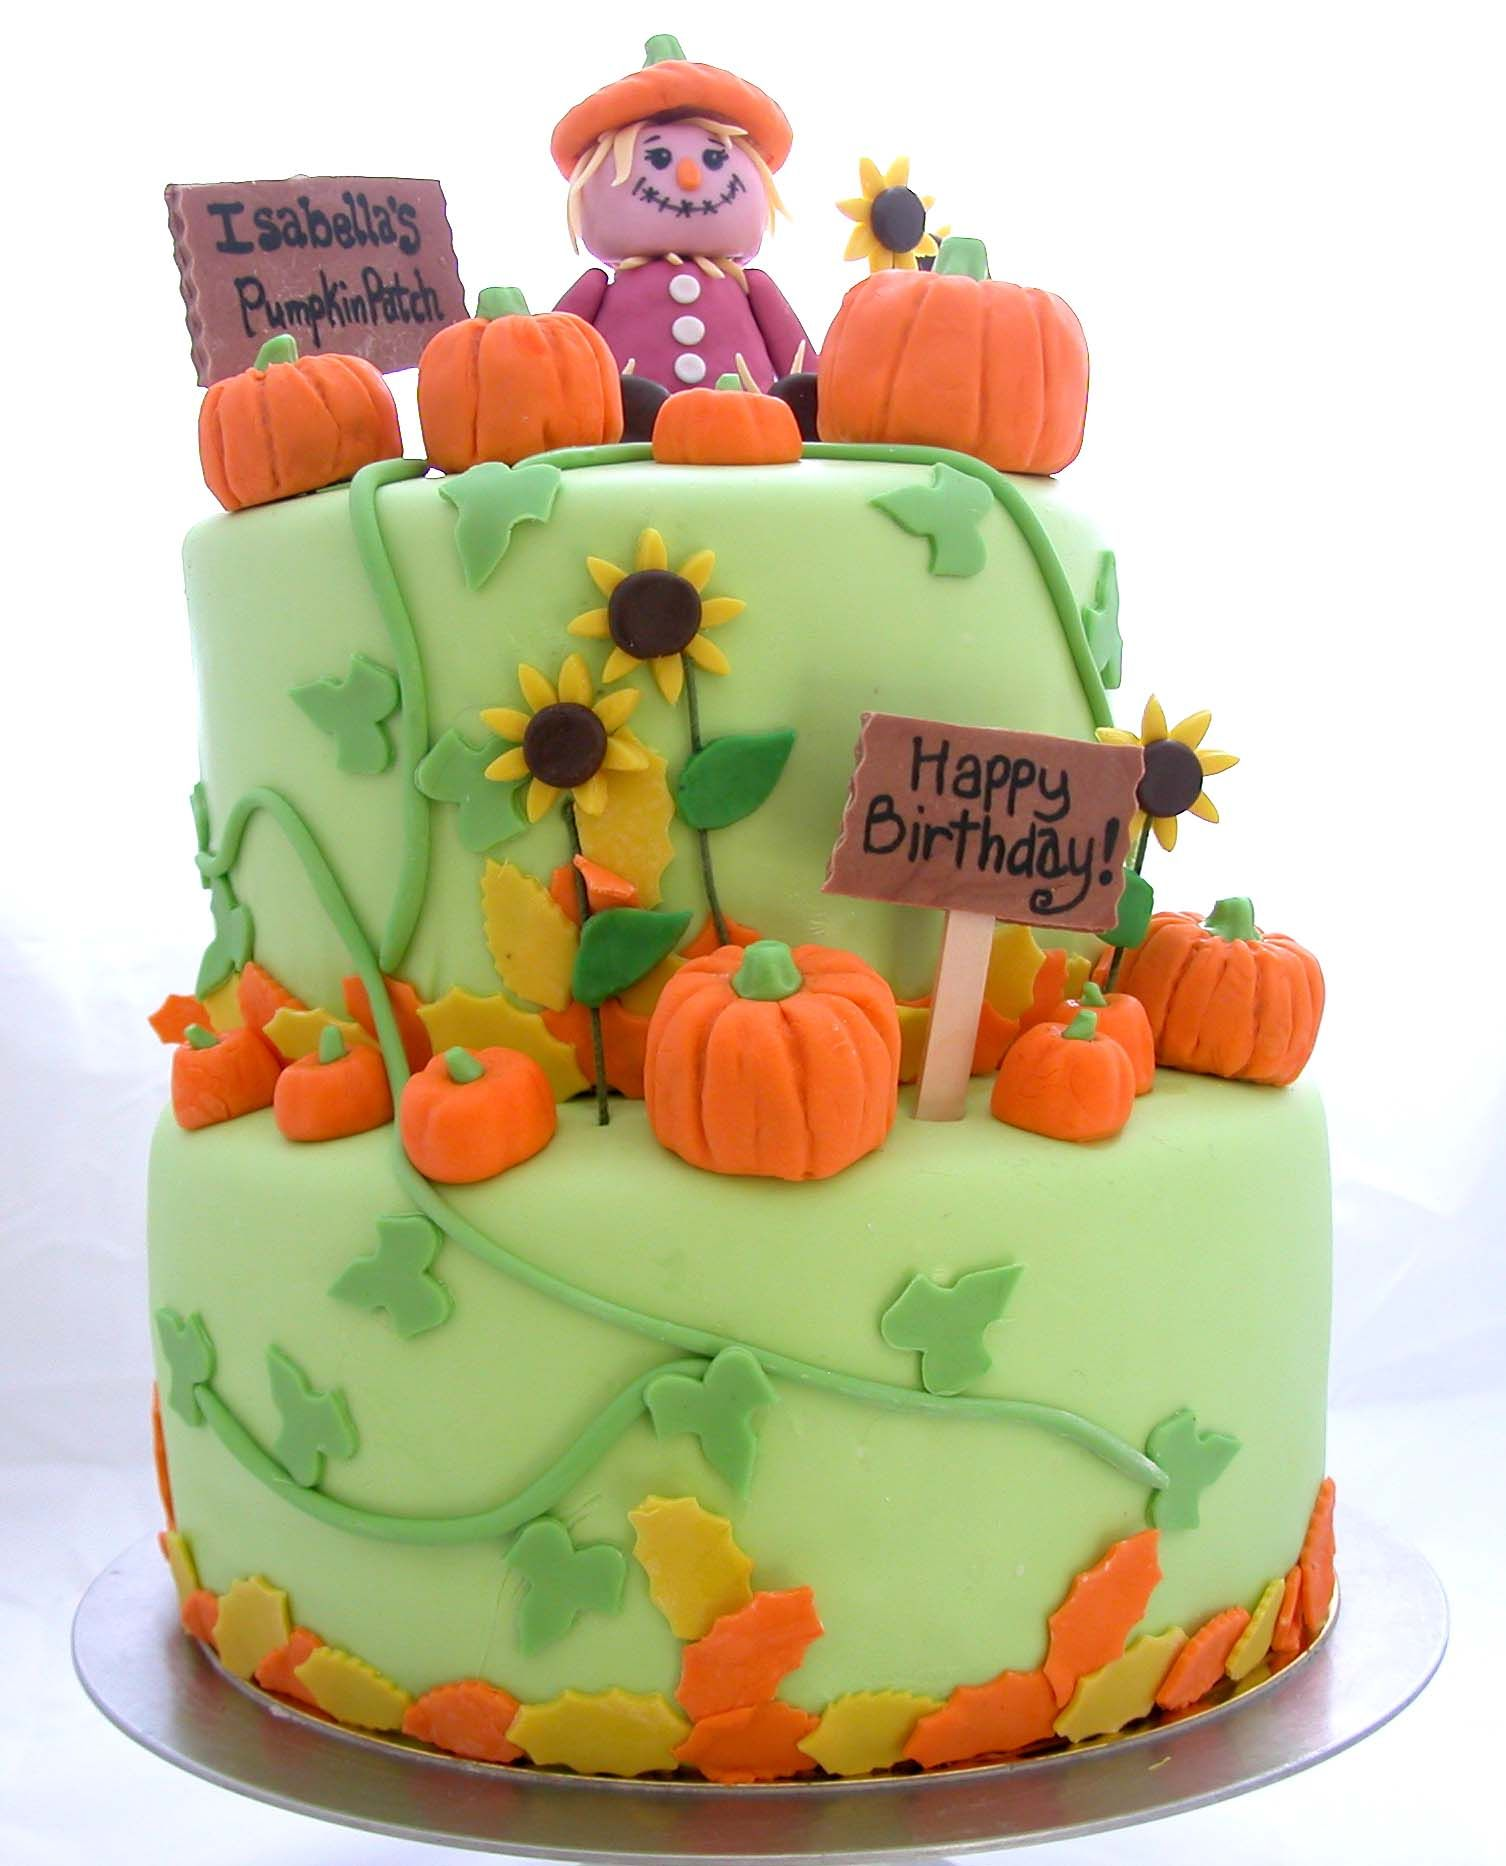 Marvelous Pumpkin Patch Birthday Cake Pumpkin Birthday Cakes Pumpkin Personalised Birthday Cards Beptaeletsinfo